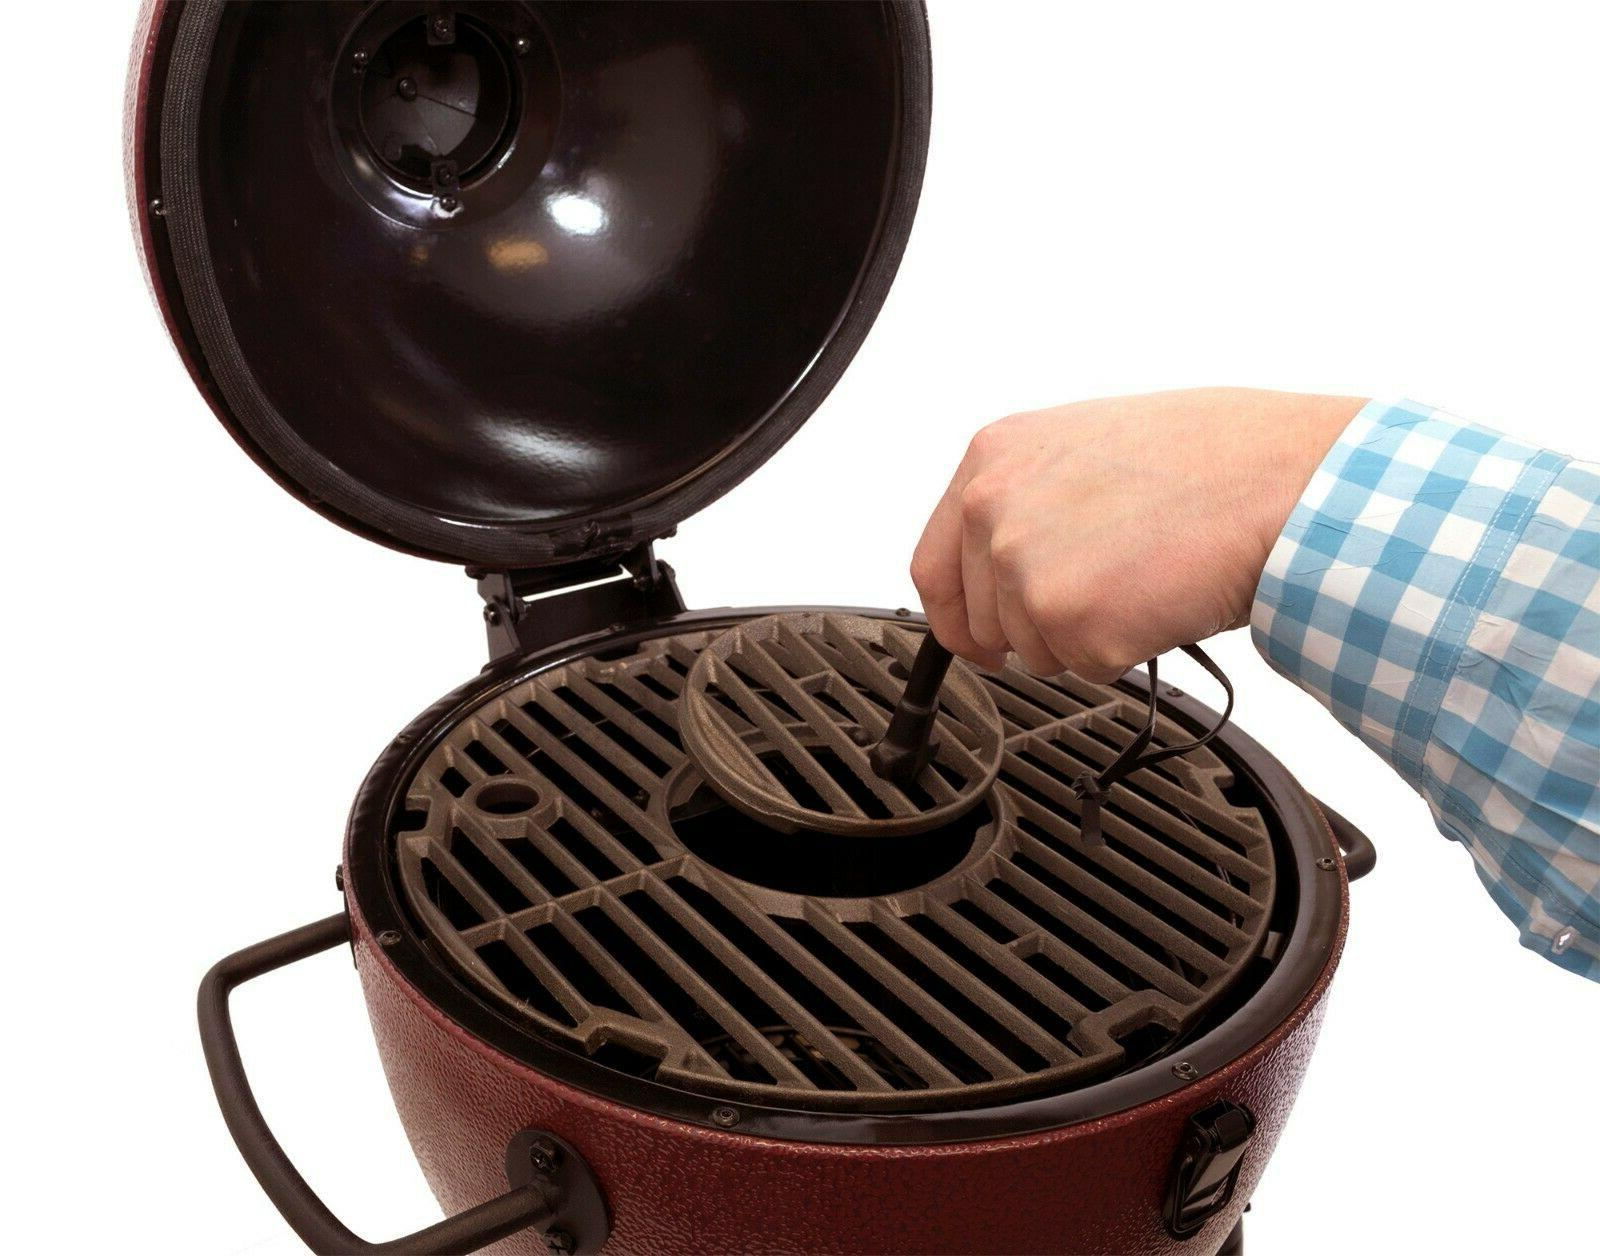 Patio Garden AKORN Kamado Jr Kooker Red,